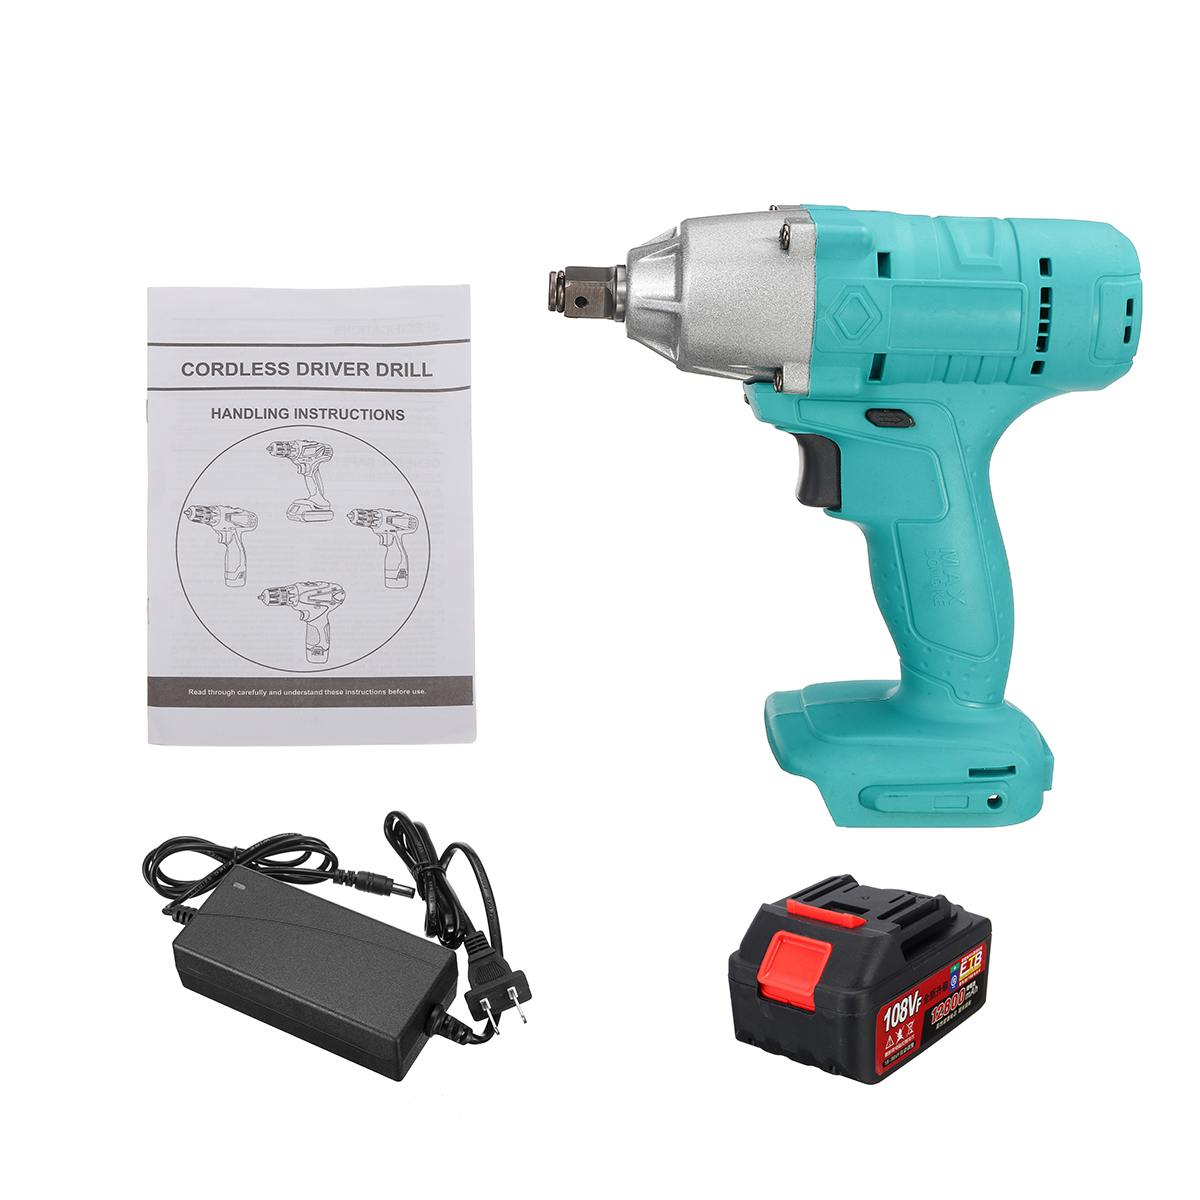 New 320N/m 108VF 12800mAh Lithium-Ion Battery Electric Cordless Impact Wrench Drill Driver Kit Power Tools